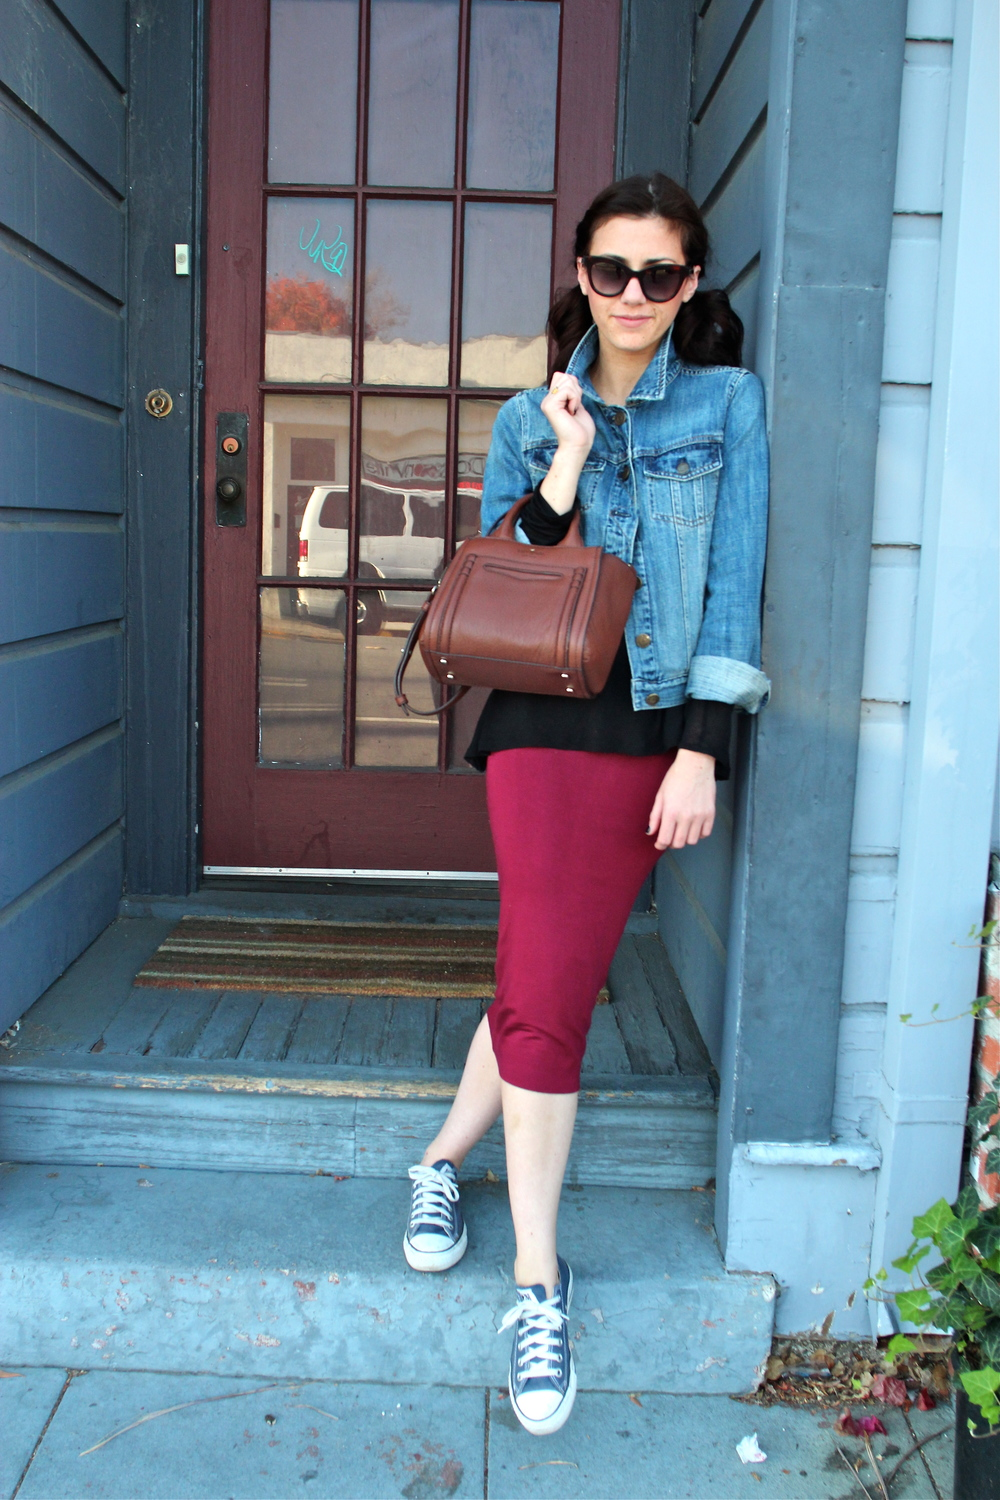 Top: Babaton, Artizia; Denim Jacket: J.Crew; Skirt: Leith, Nordstrom;  Bag: Kate Spade, Nordstrom ; Sneakers: Converse; Sunnies: Marc by Marc Jacobs